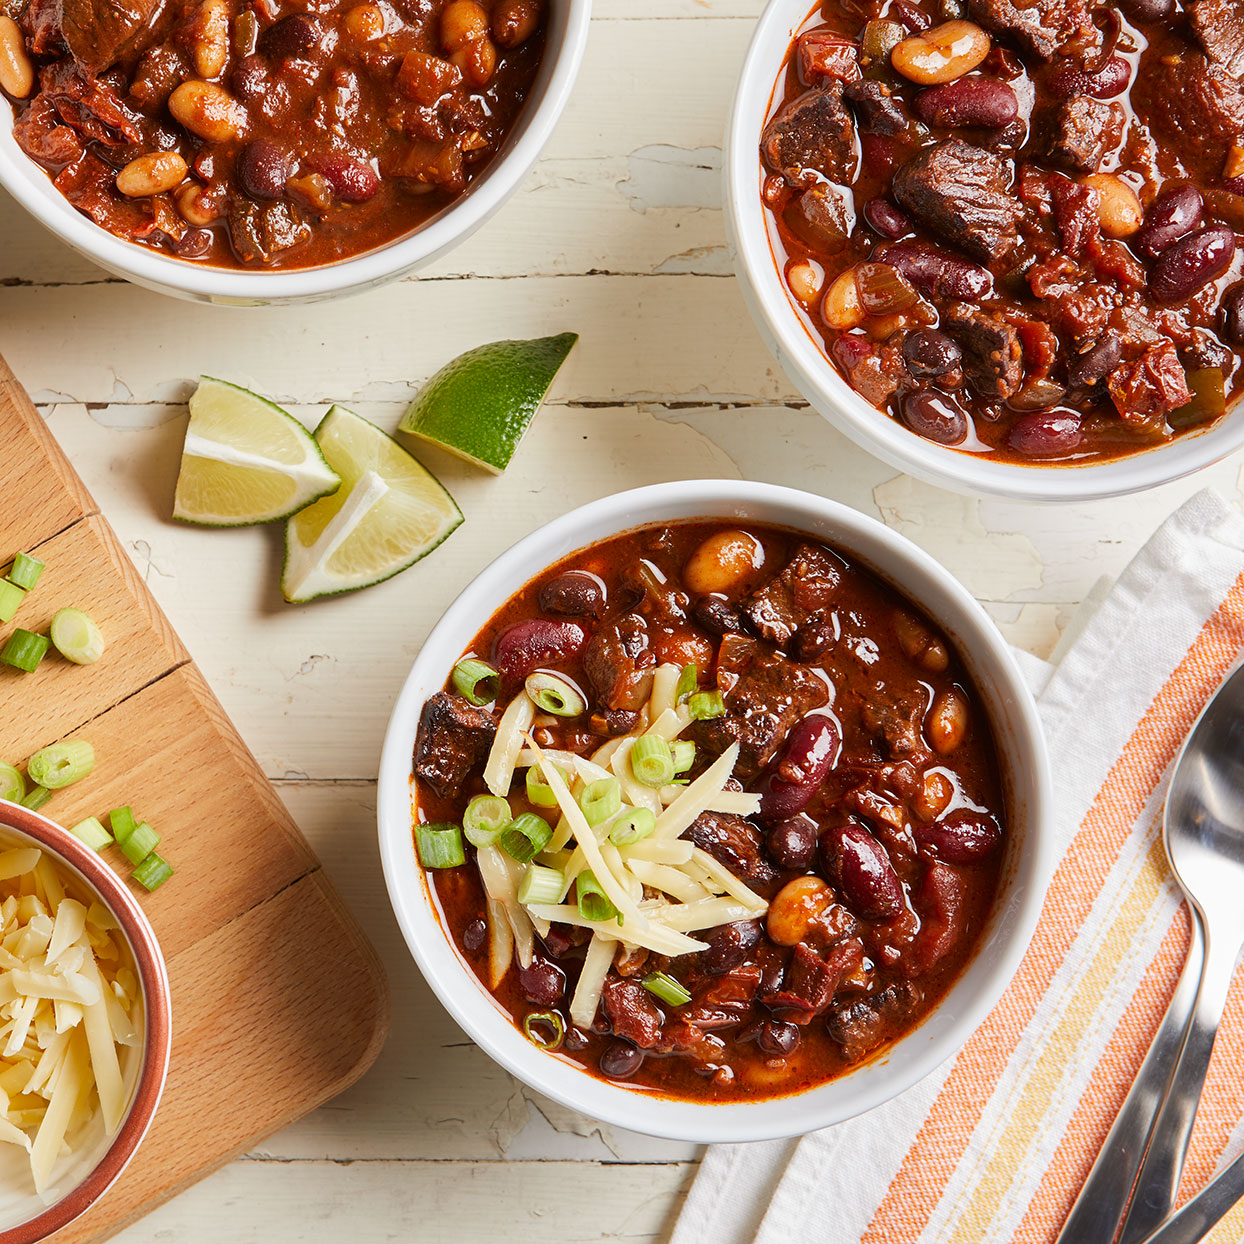 Three-Bean Chili Trusted Brands